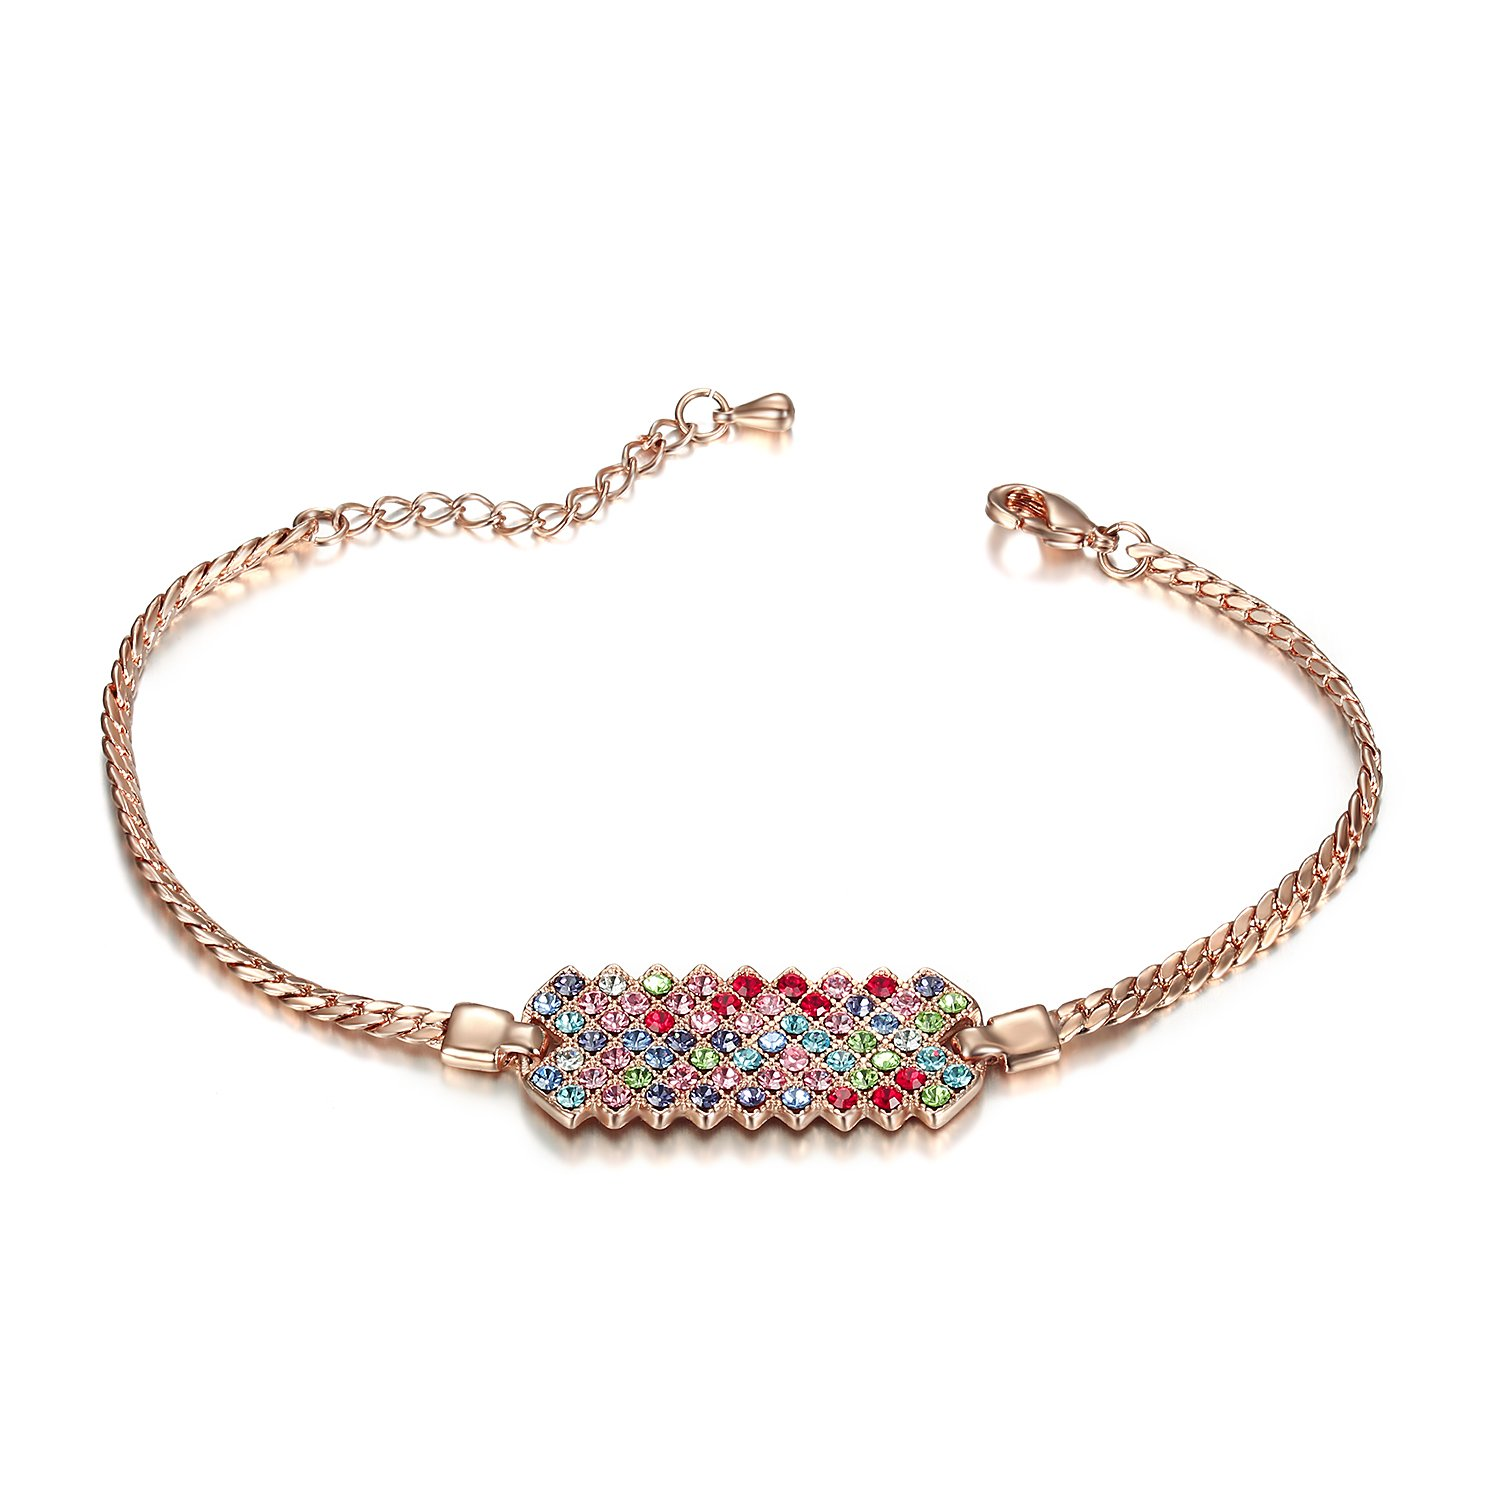 Lee Island Fashion Jewelry 18K Rose Gold Plated Multicolor Austrian Crystal Adjustable Fashion Bar Bracelet For Woman Girl Gift-Gift Packing MSRP USD120 SL0001-Multicolor